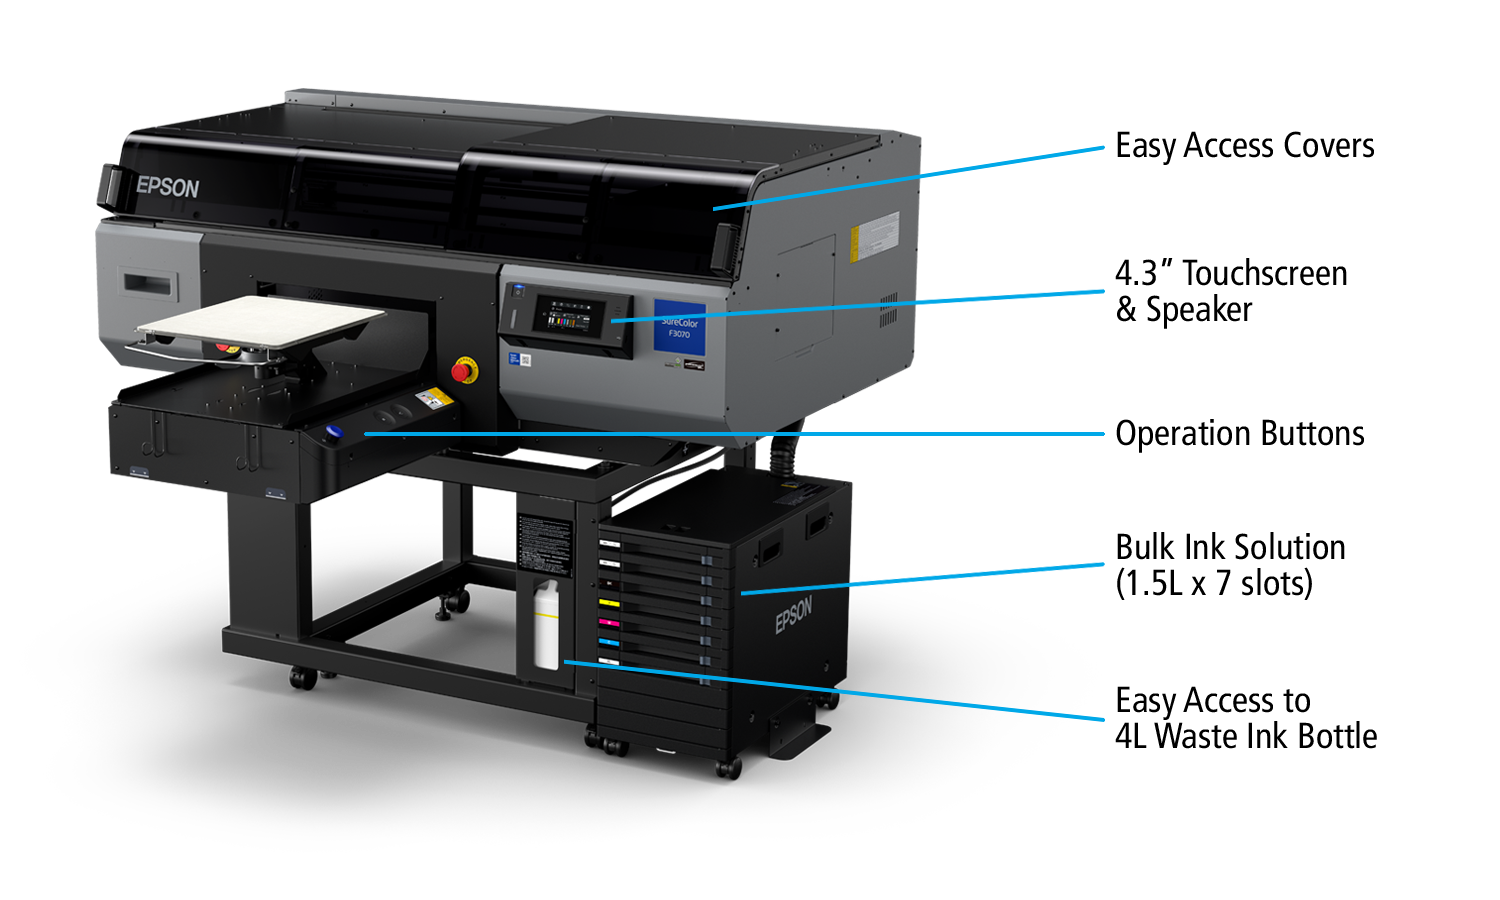 Epson SureColor F3070 Direct to Garment Printer Right Side View with Features